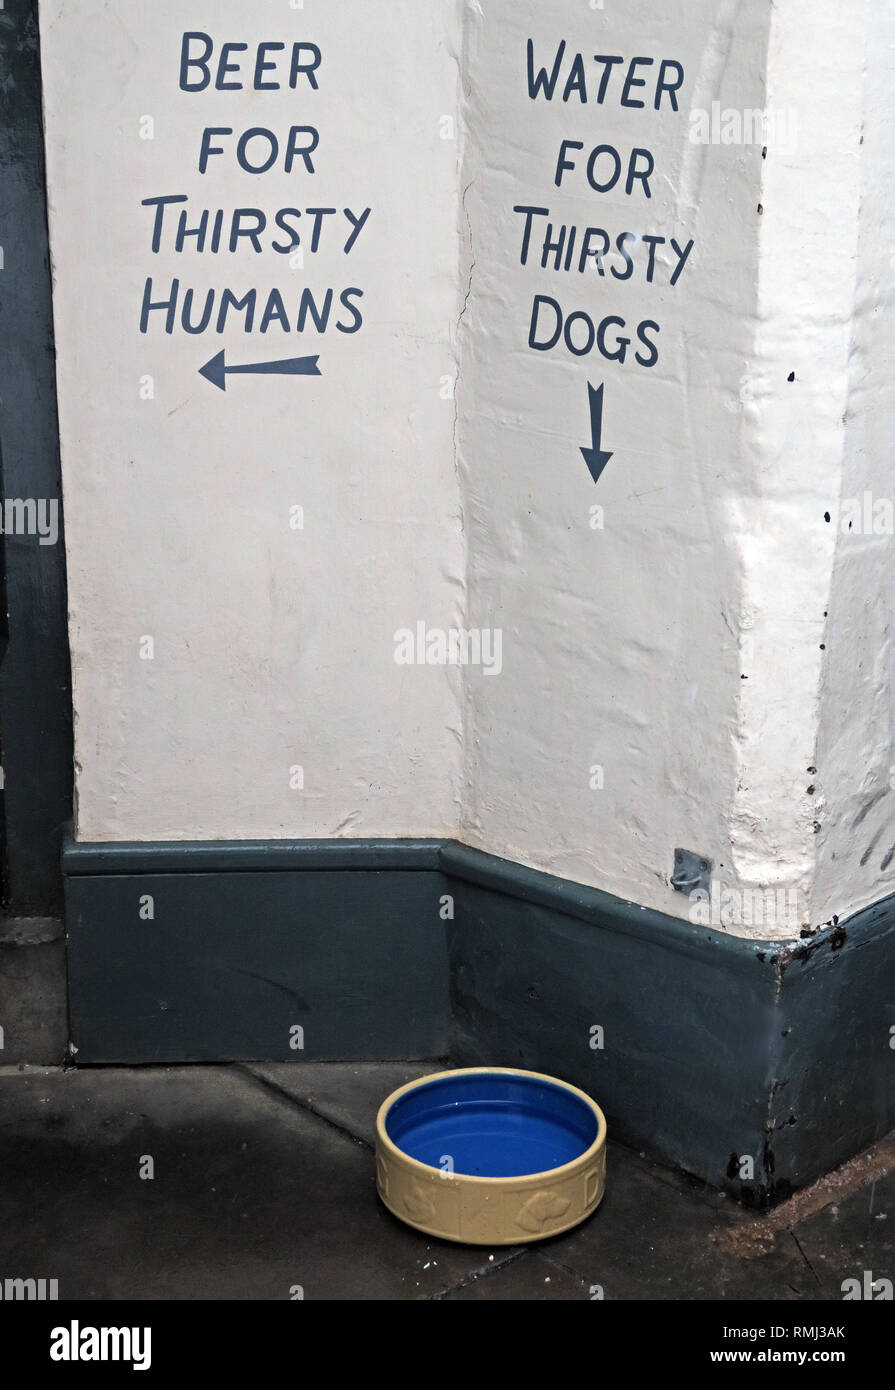 Beer For Thirsty Humans, Water for Thirsty Dogs sign, Cirencester town centre, Gloucestershire, Cotswolds, South West England, UK - Stock Image